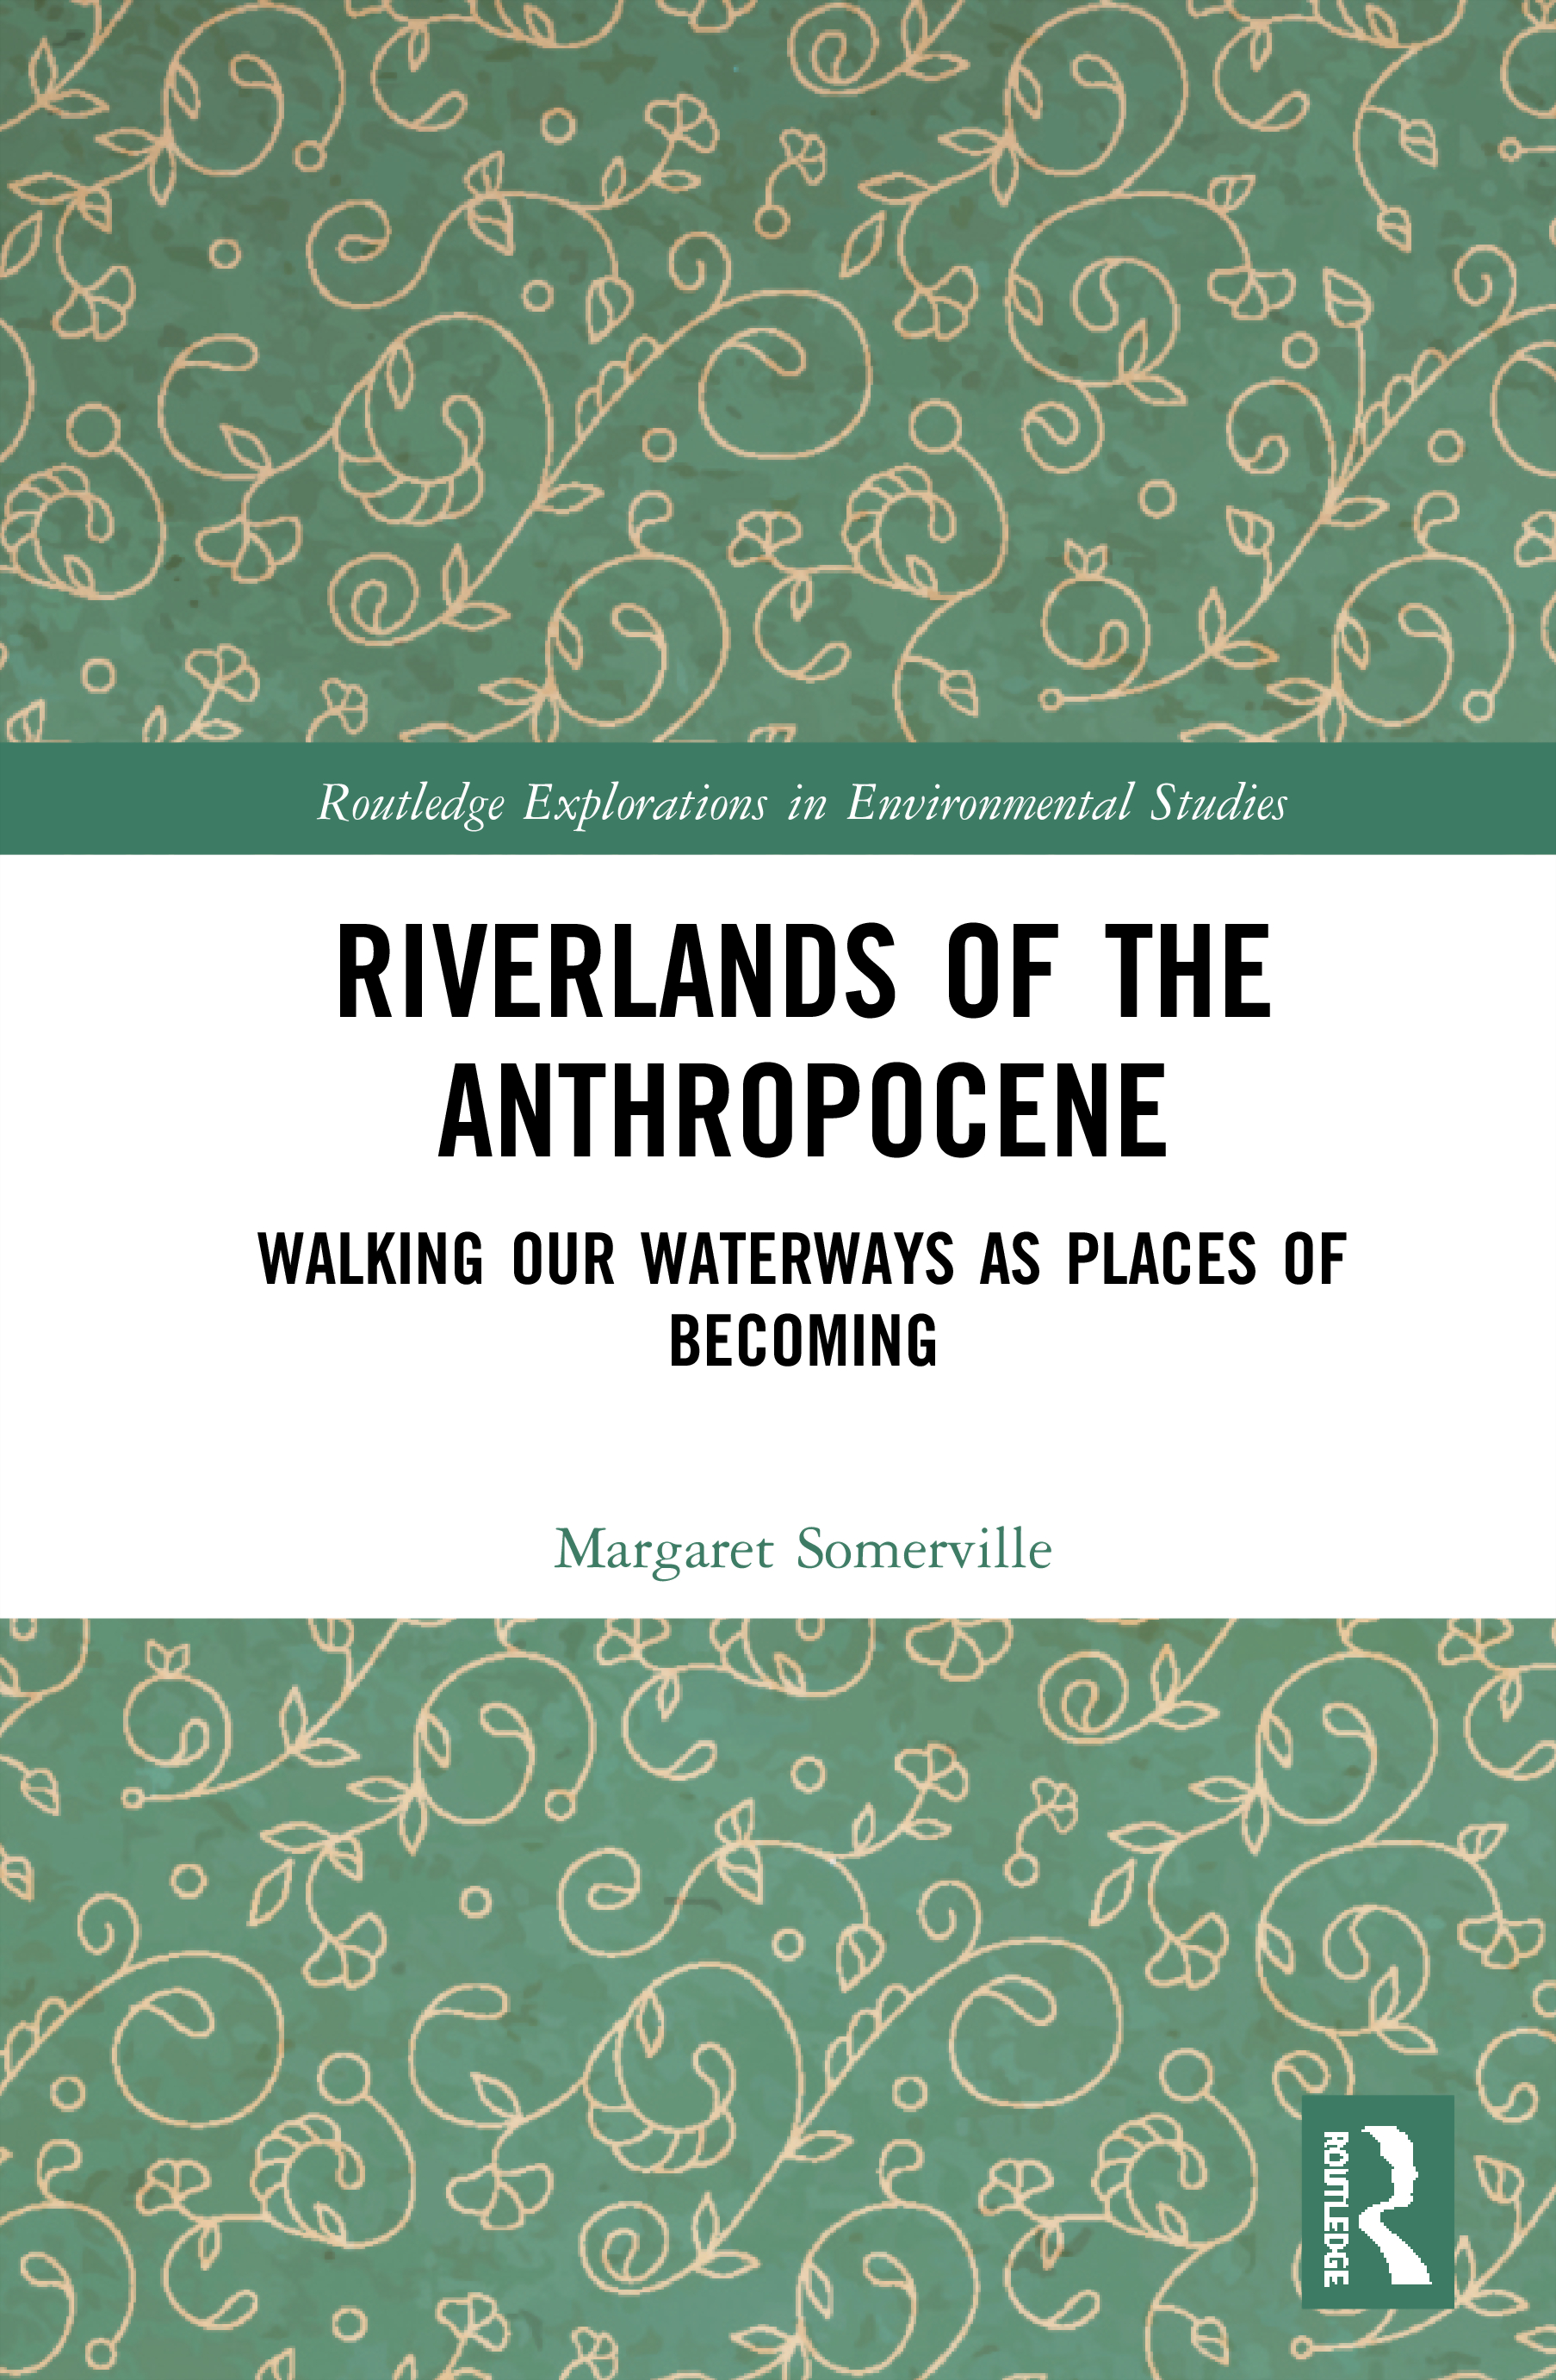 Riverlands of the Anthropocene: Walking Our Waterways as Places of Becoming book cover